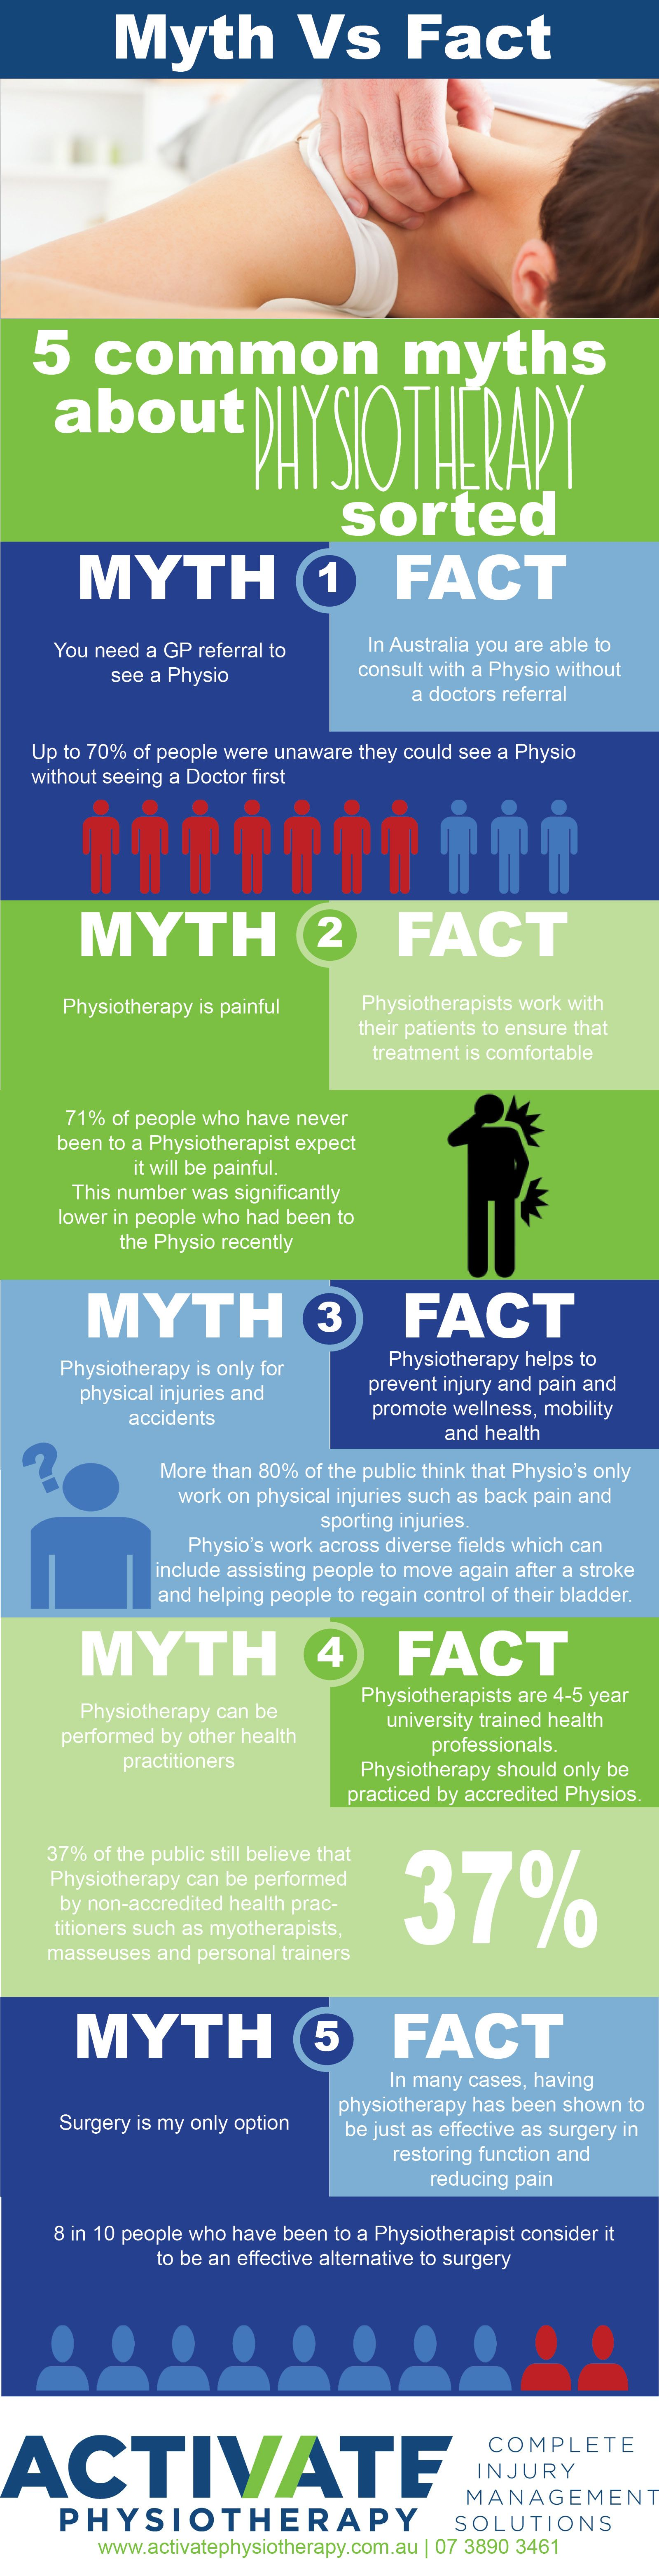 Mythbusters Busting 5 Common Myths about Physiotherapy